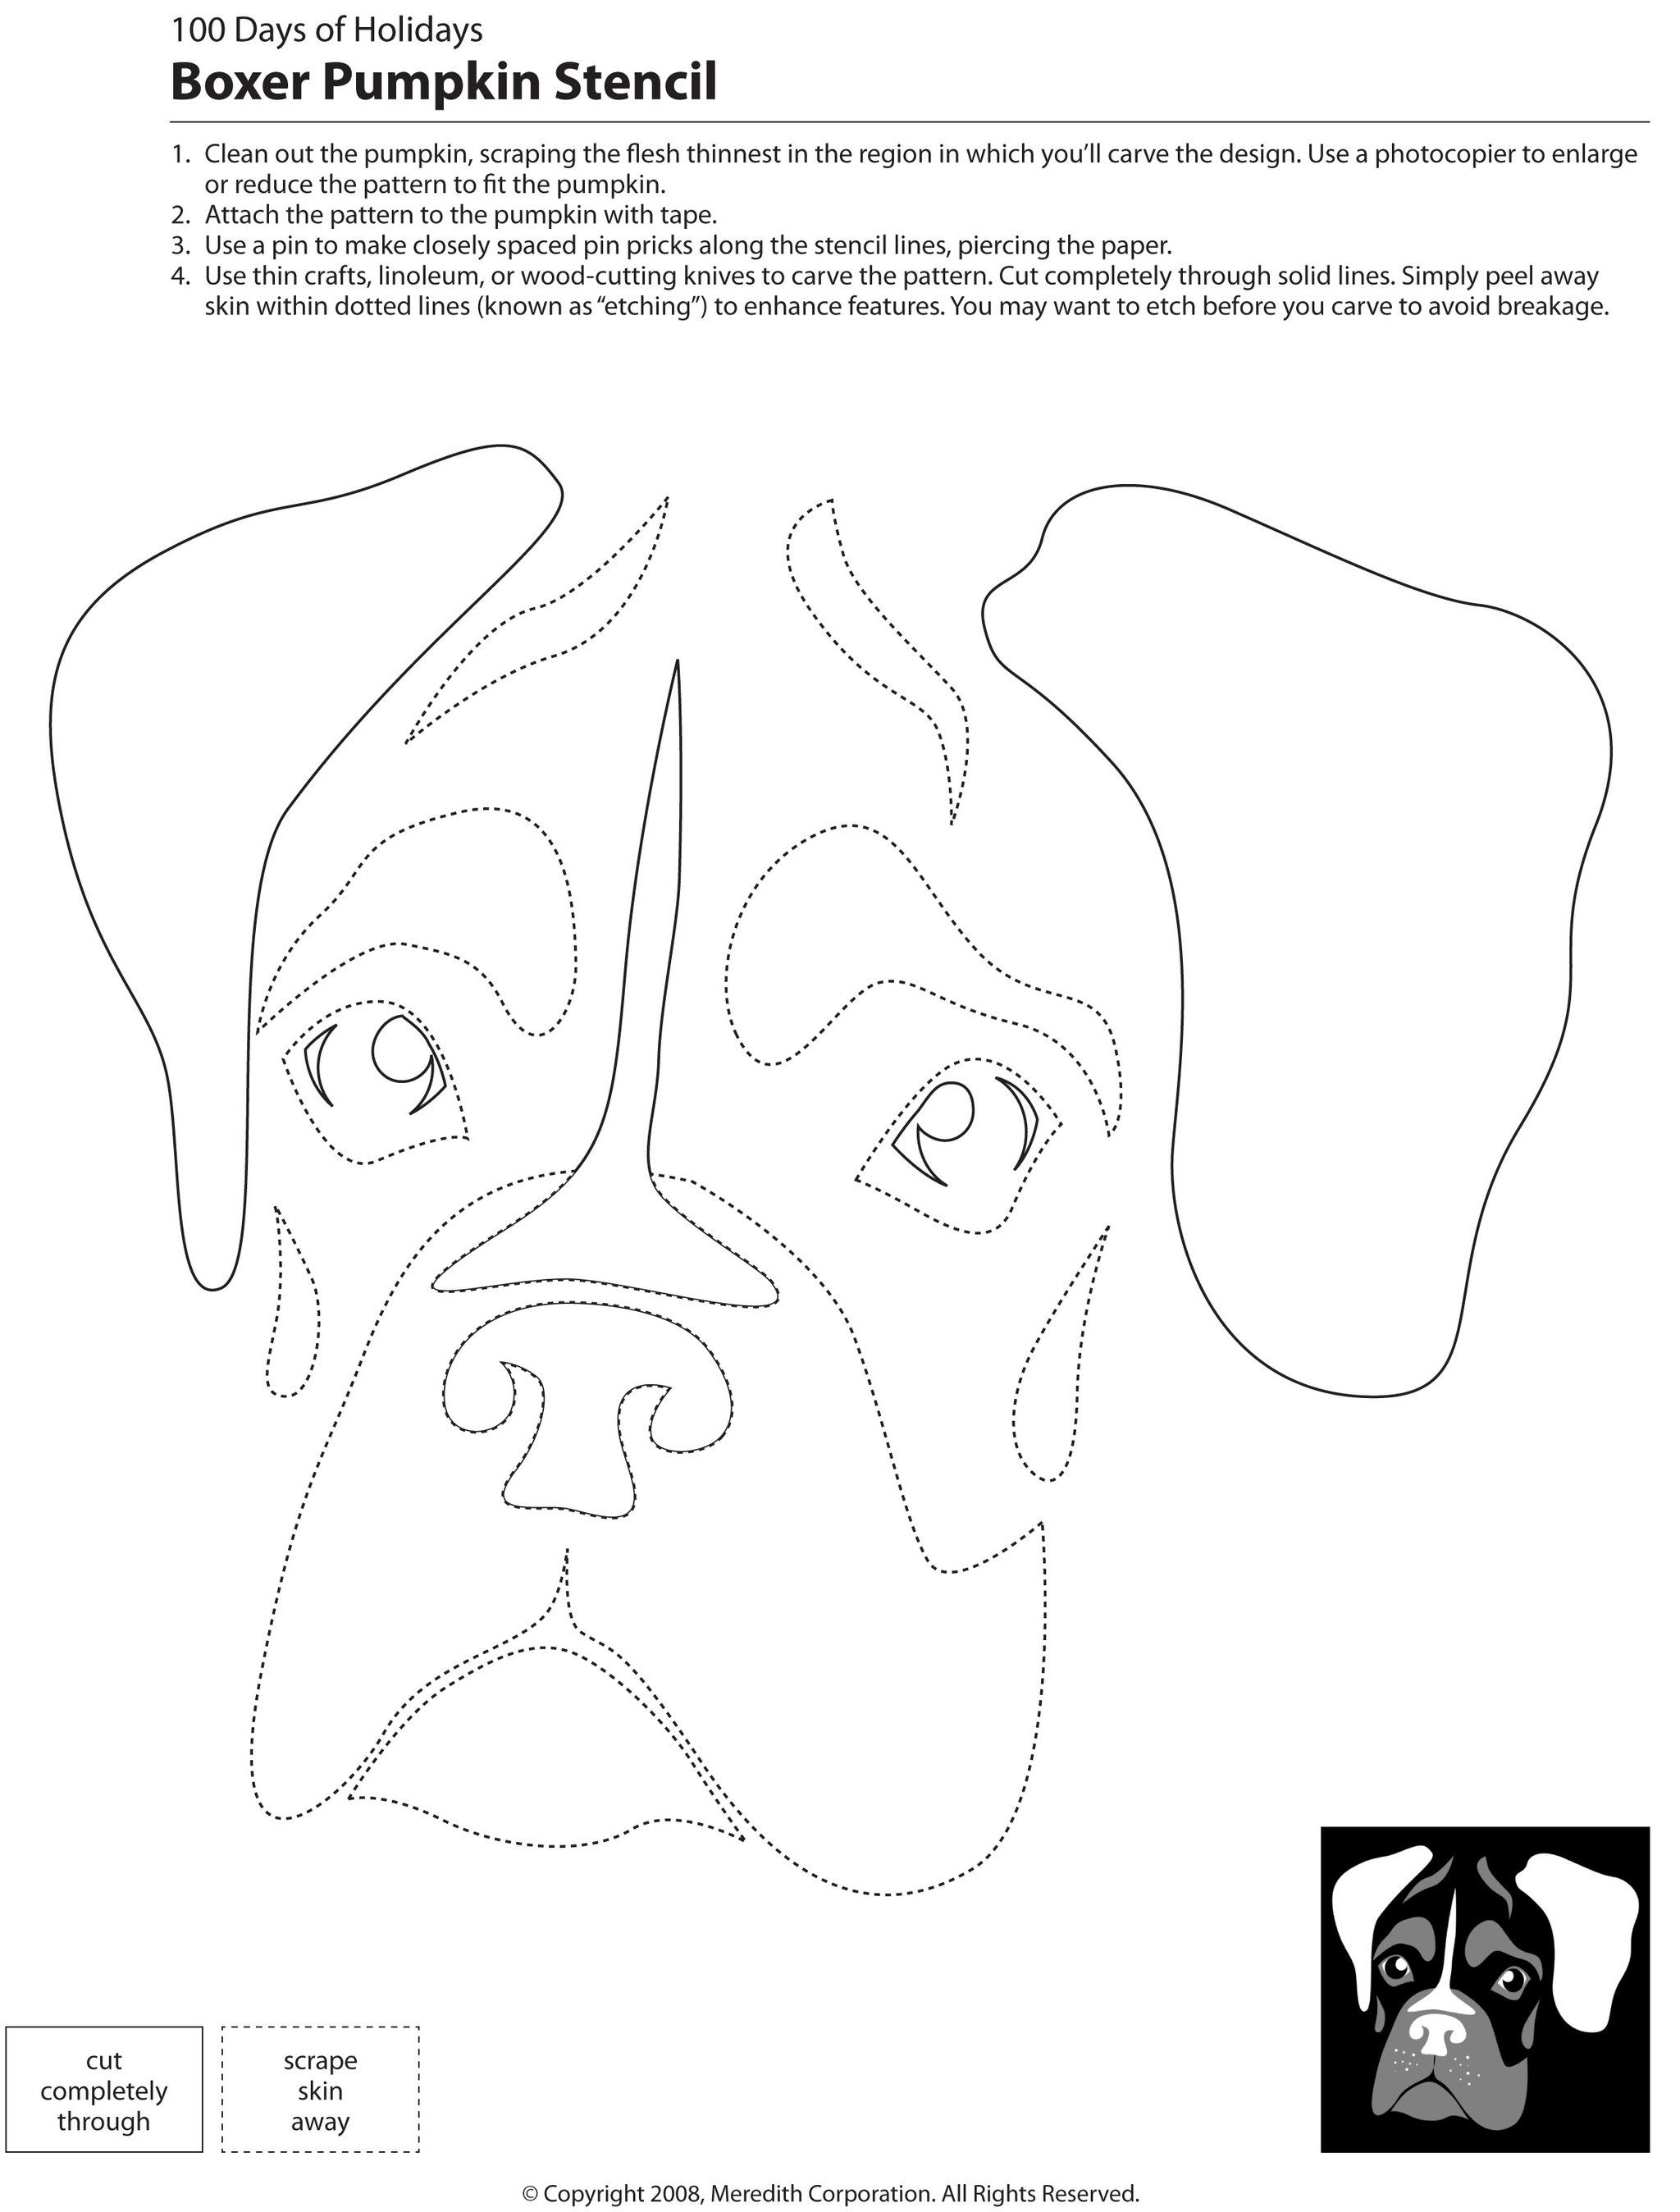 22 Free Pumpkin Carving Dog Stencils (Breed Specific) | Embroidery - Free Printable Pumpkin Carving Templates Dog